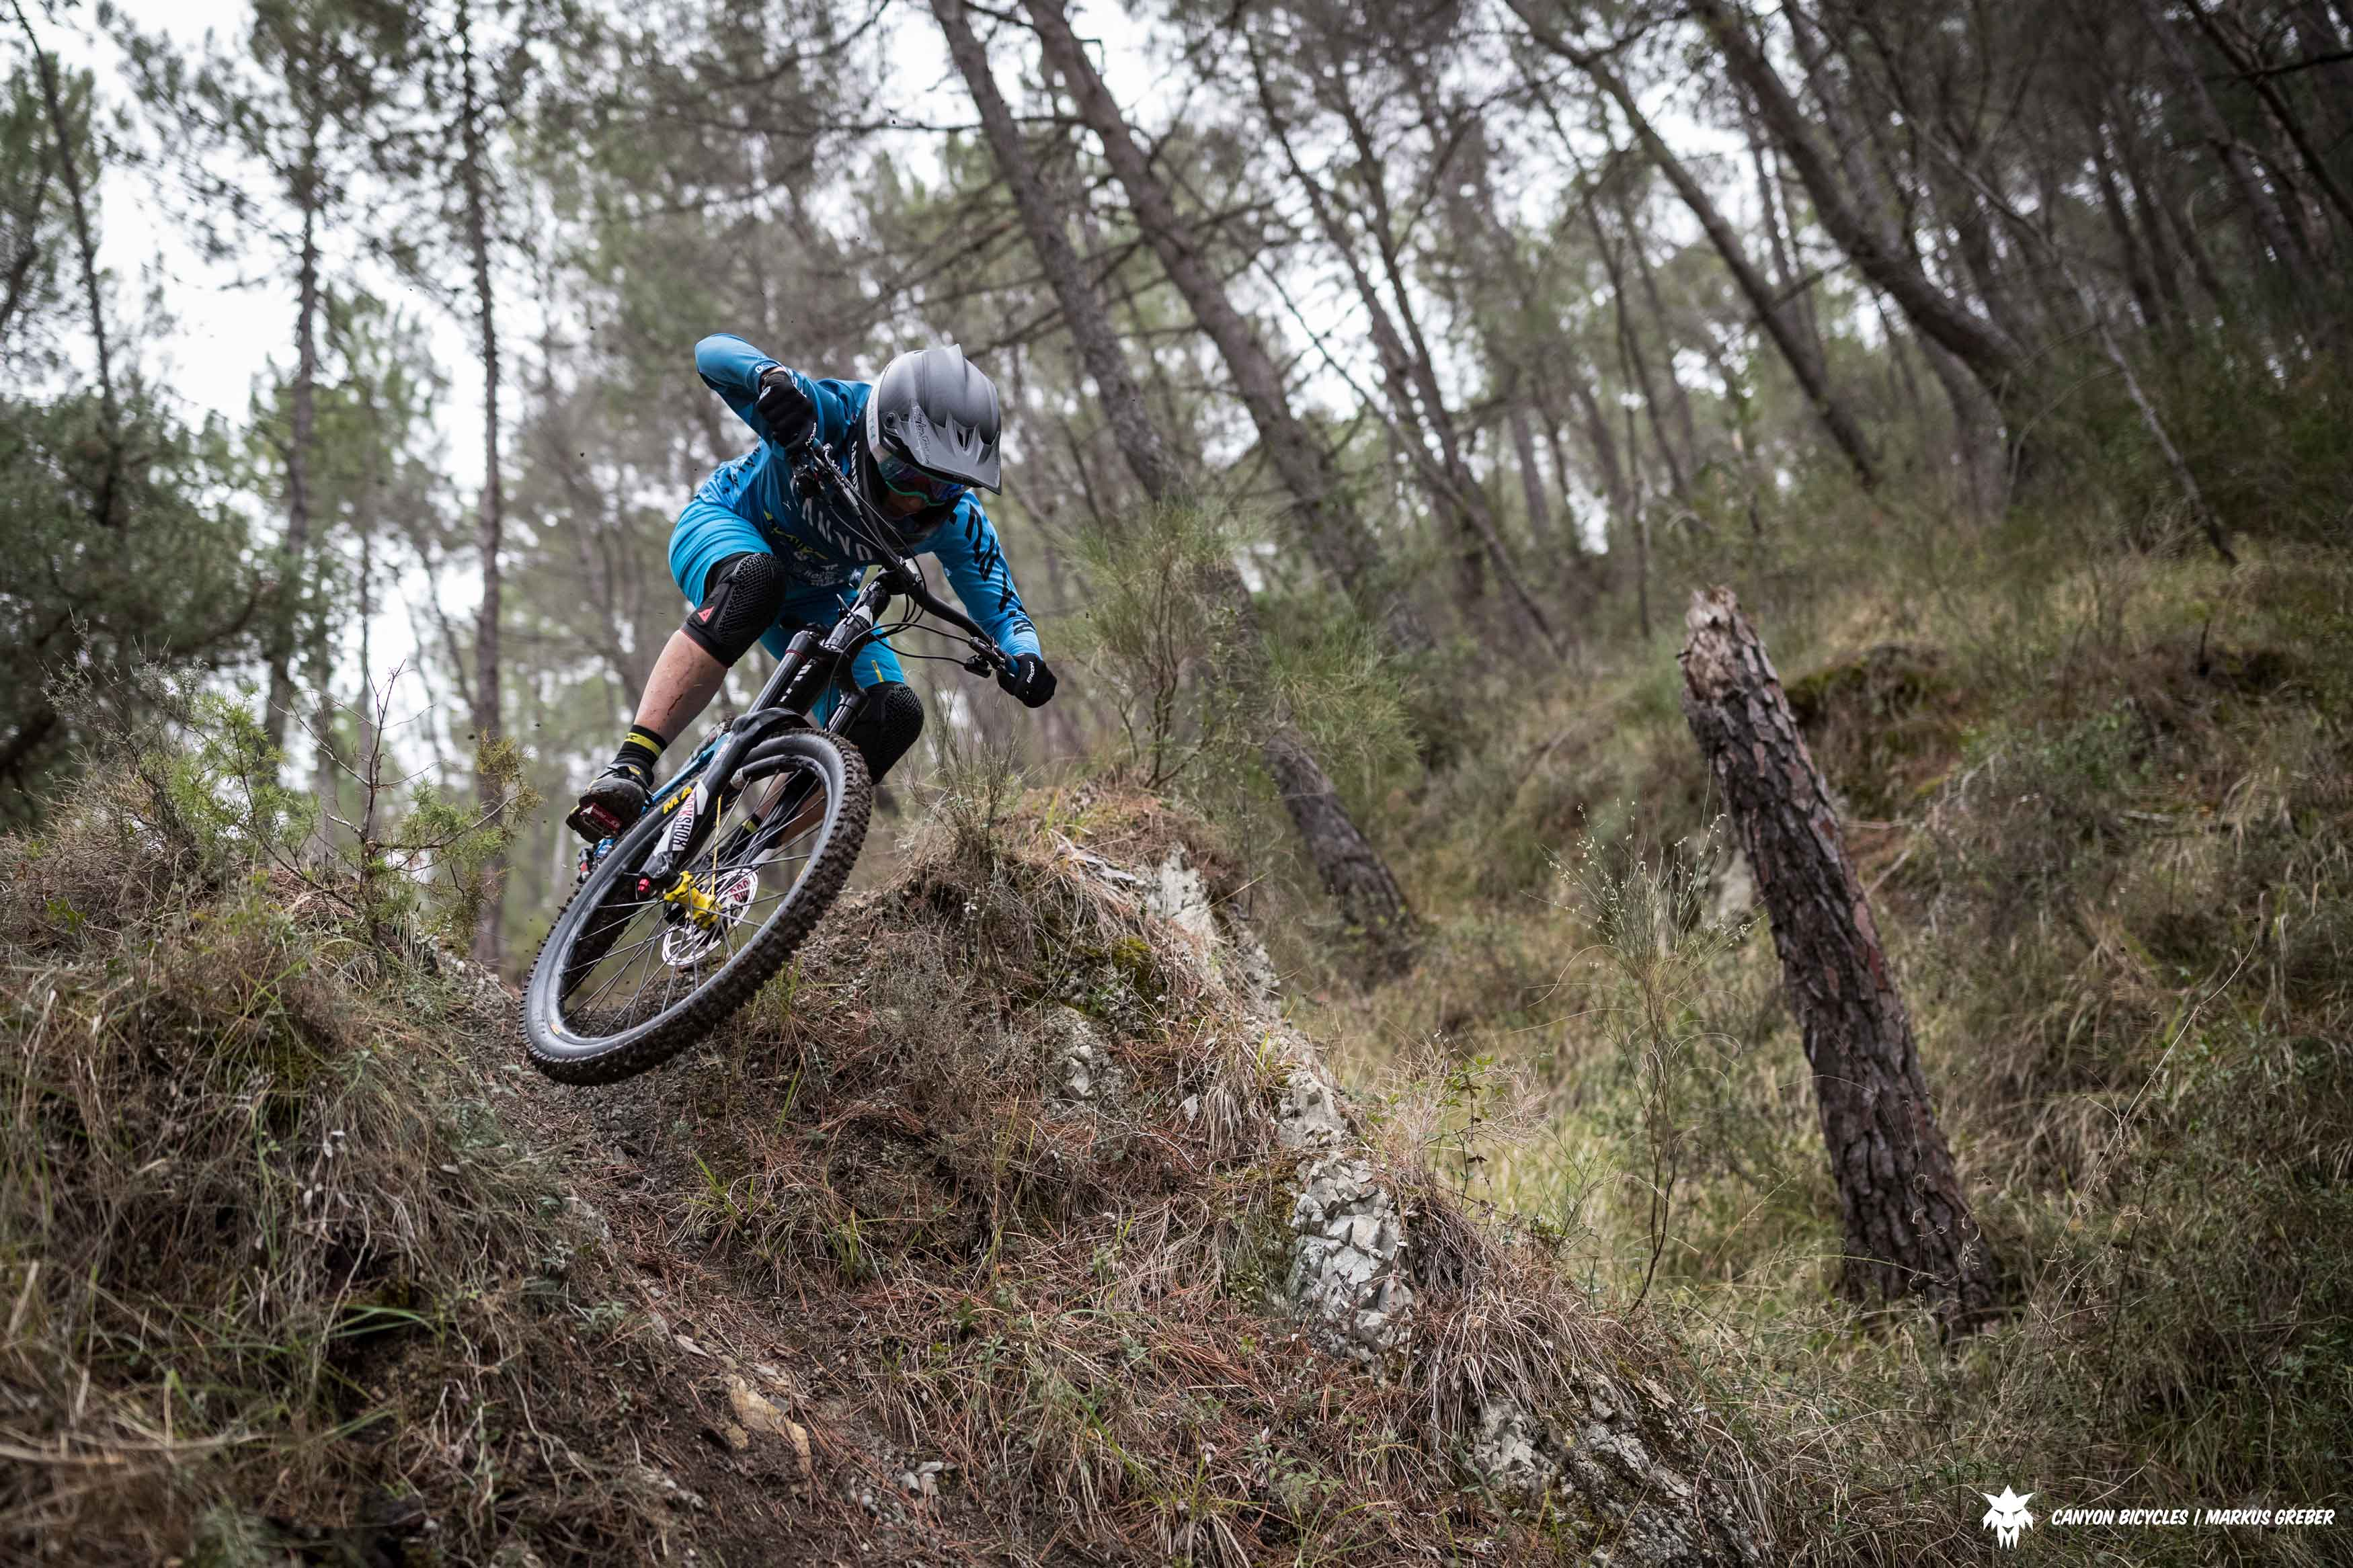 Canyon Factory Enduro Racing